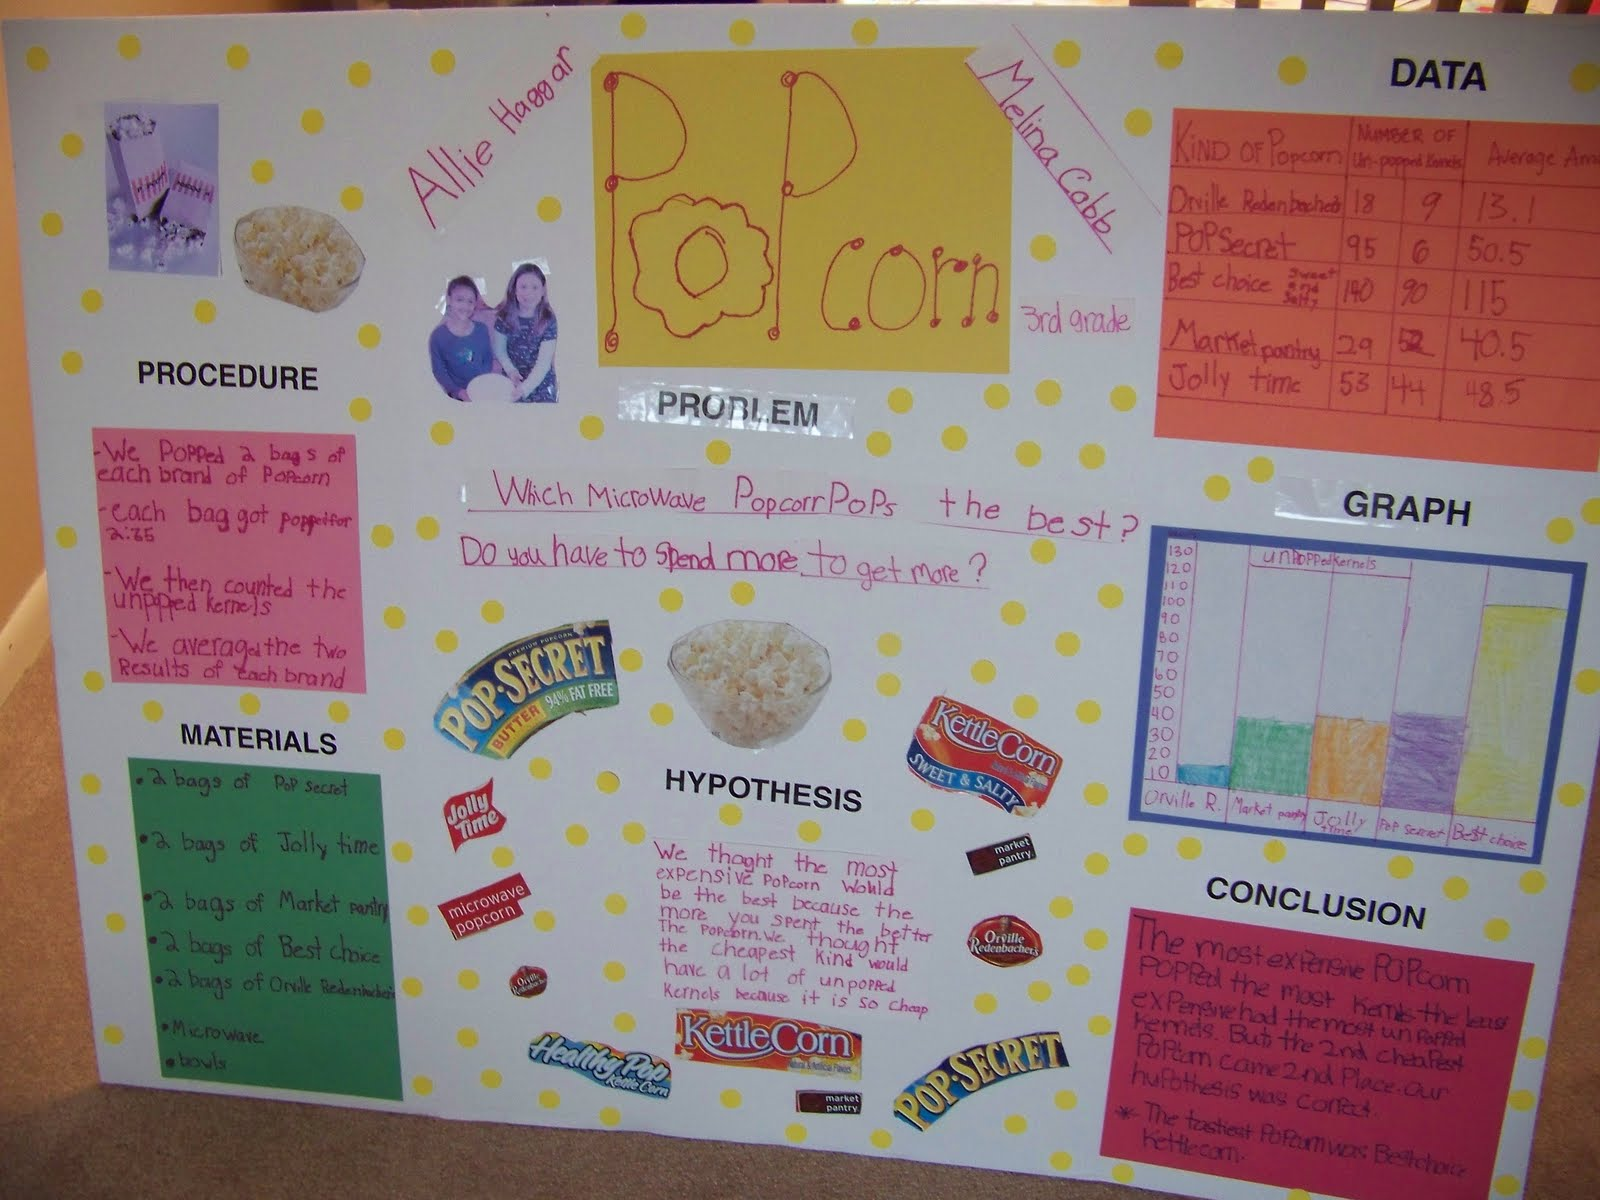 popcorn science fair projects What is a good popcorn science project title what is a catchy title for a science fair project about popcorn answer: snap, crackle, and popcorn could be a good title for a project about popcorn for the science far +1 more answer read more.